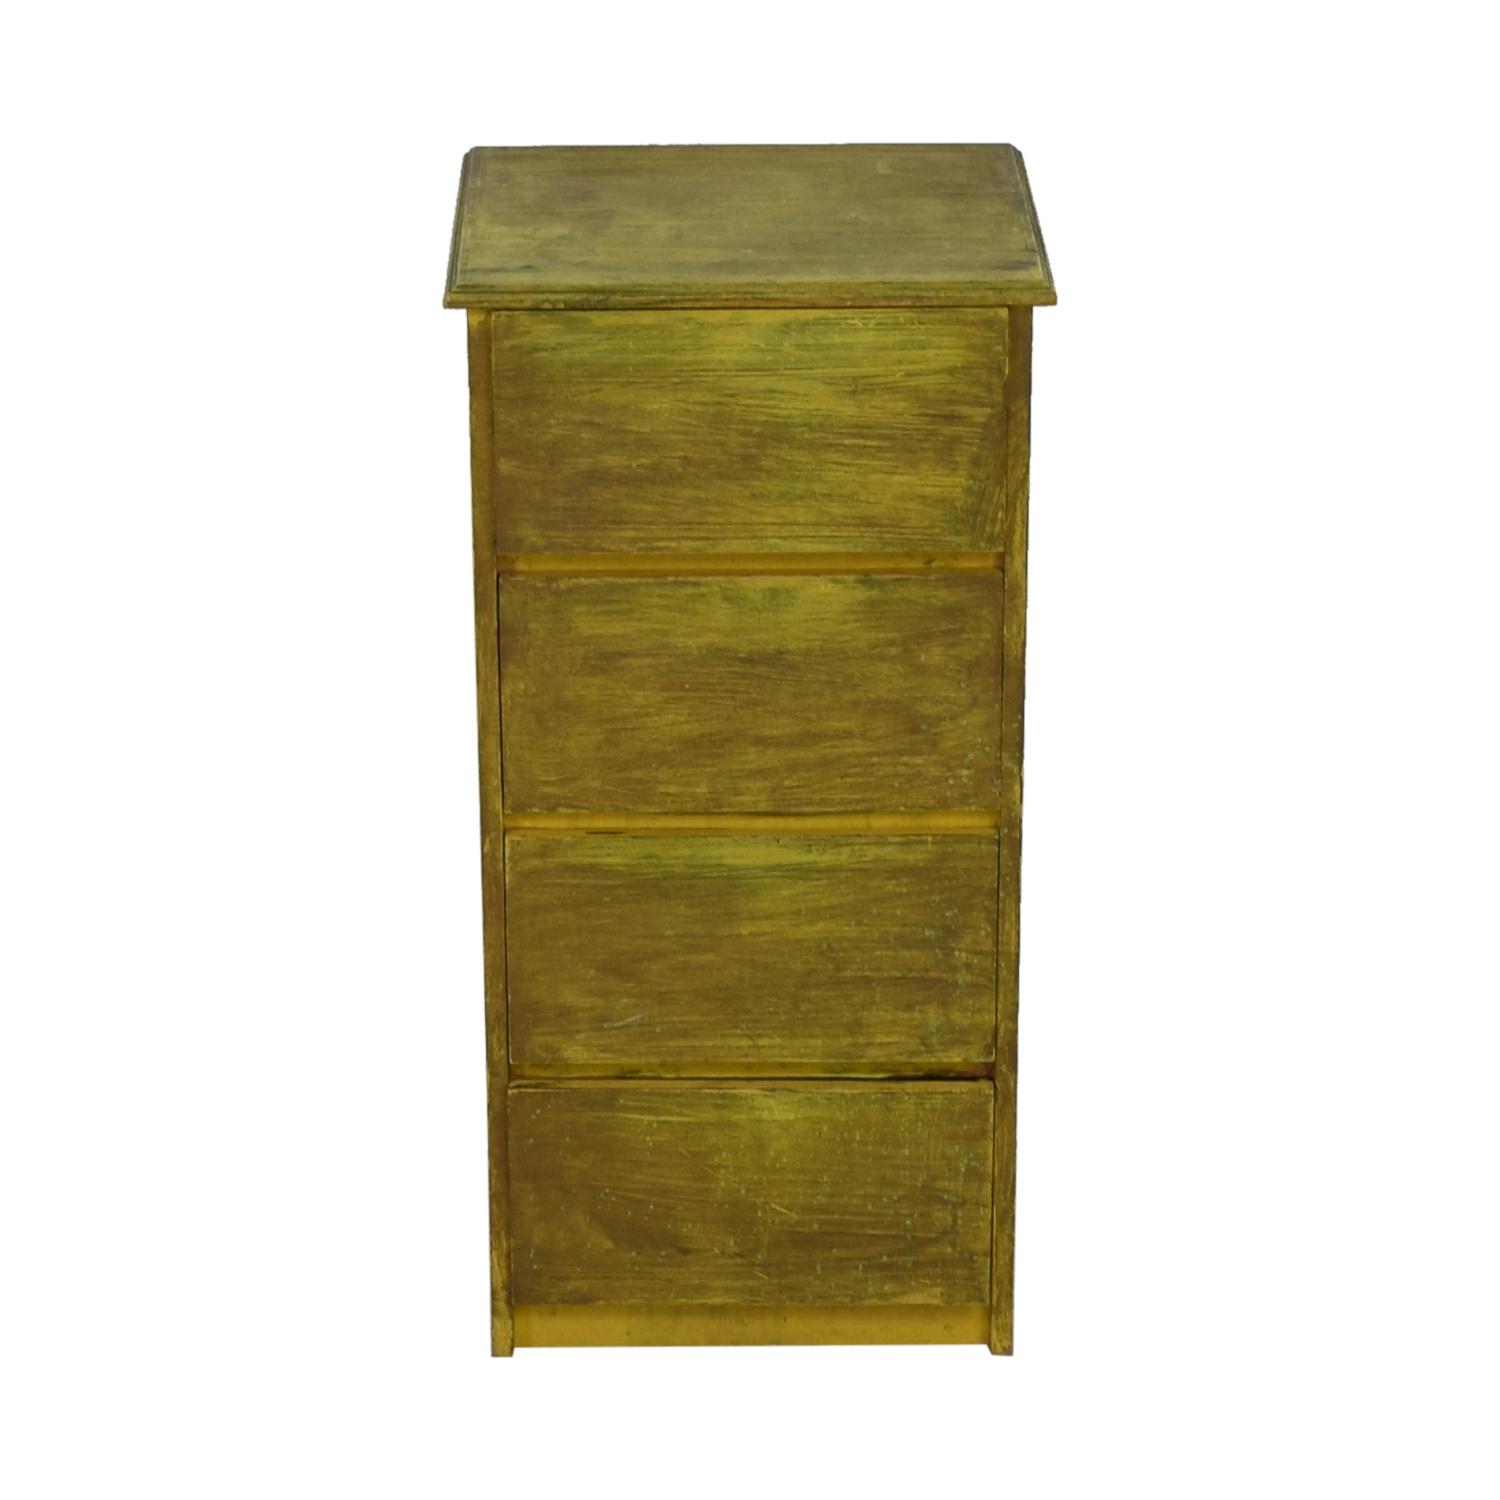 Joss & Main Joss & Main Distressed Green Four-Drawer Dresser coupon